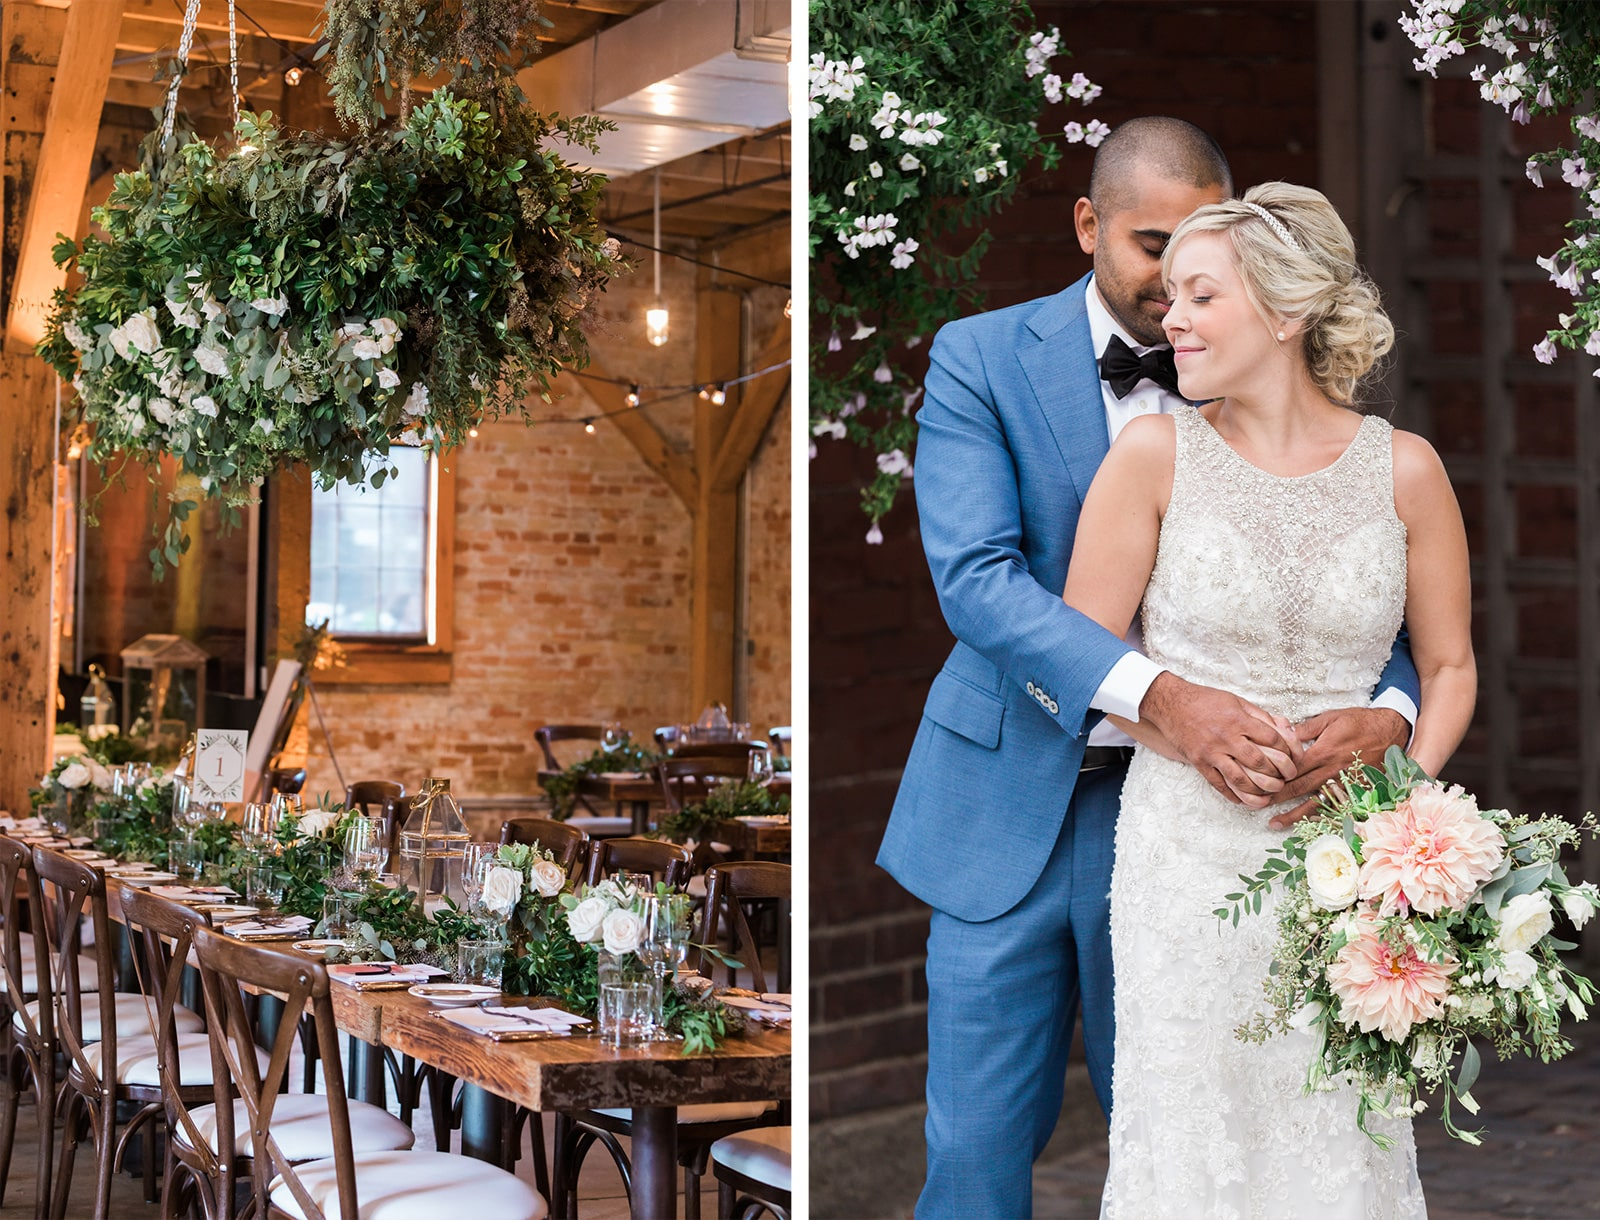 Intimate & Contemporary Wedding at Archeo: Tara + Drew